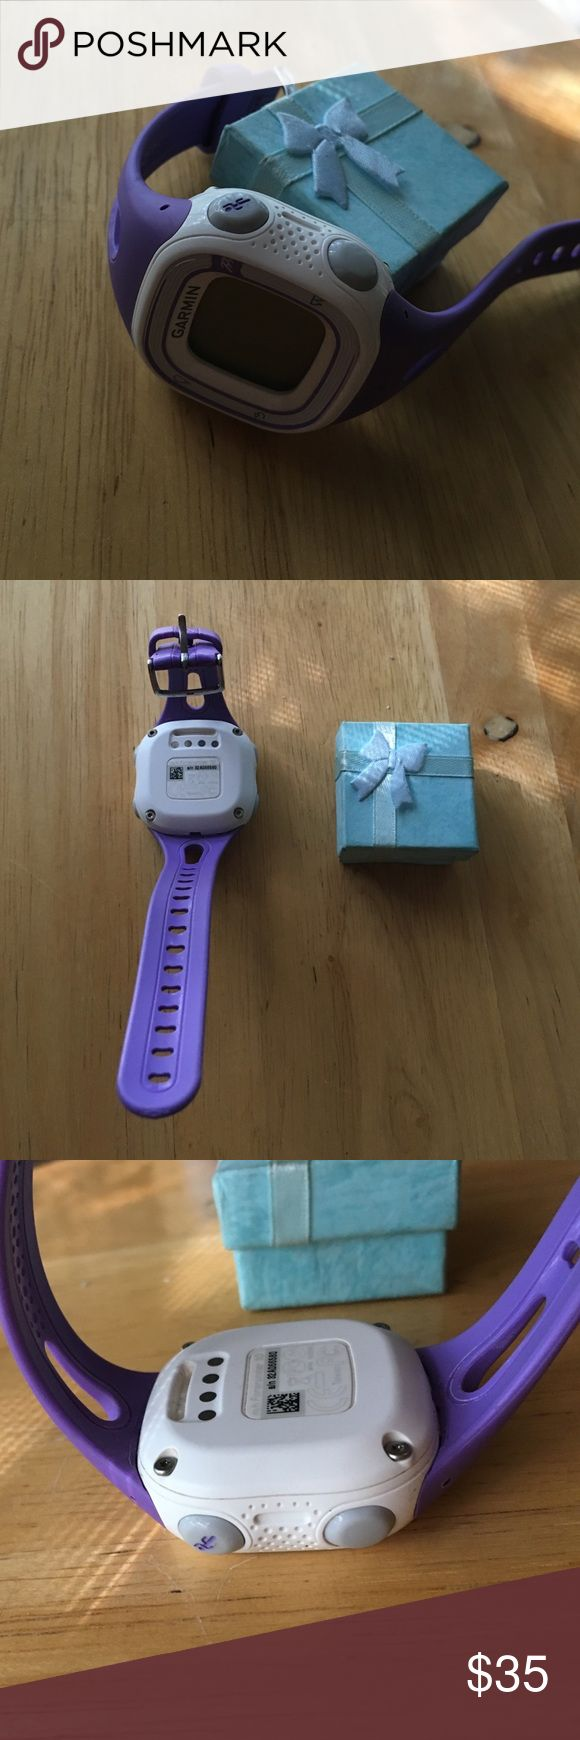 Garmin Forerunner 15 Watch Women's Small Violet Garman forerunner 15 women's violet and white small running watch .GPS. Comes with no charger included. perfect condition brand-new amazing fit and great for every day wear Garmin Accessories Watches